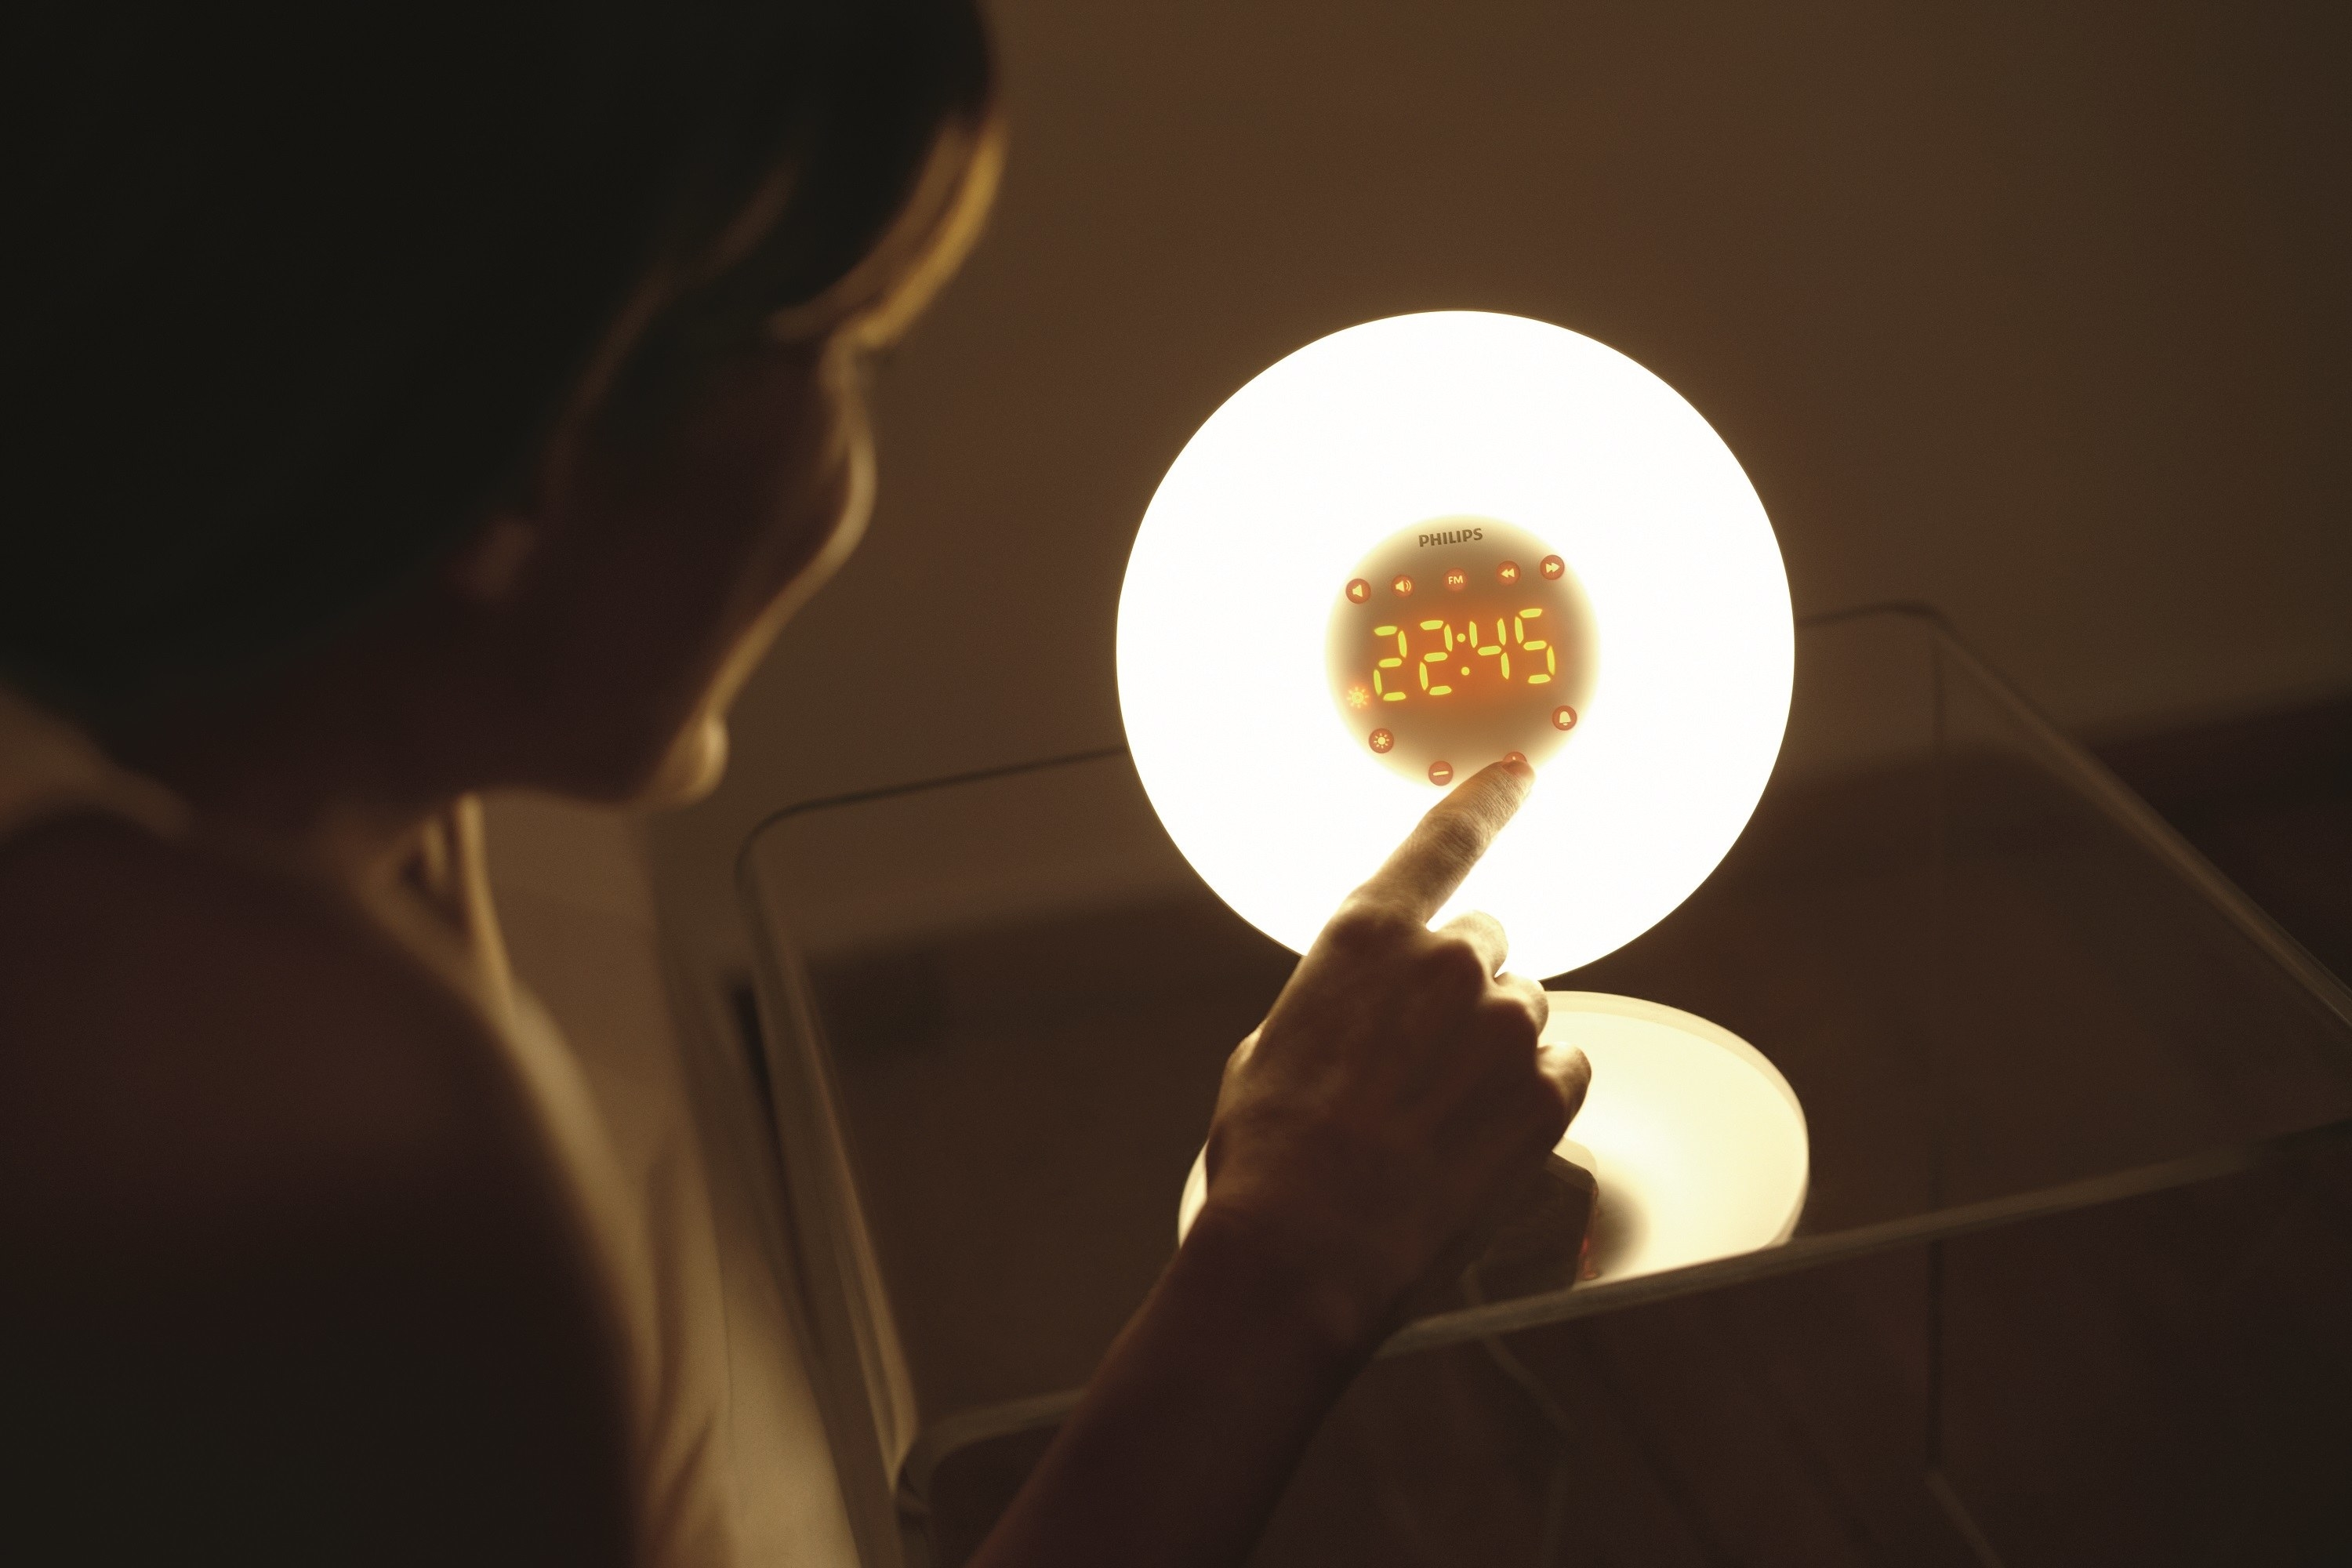 An LED lit alarm clock that gives off a warm, natural lighting on a stand